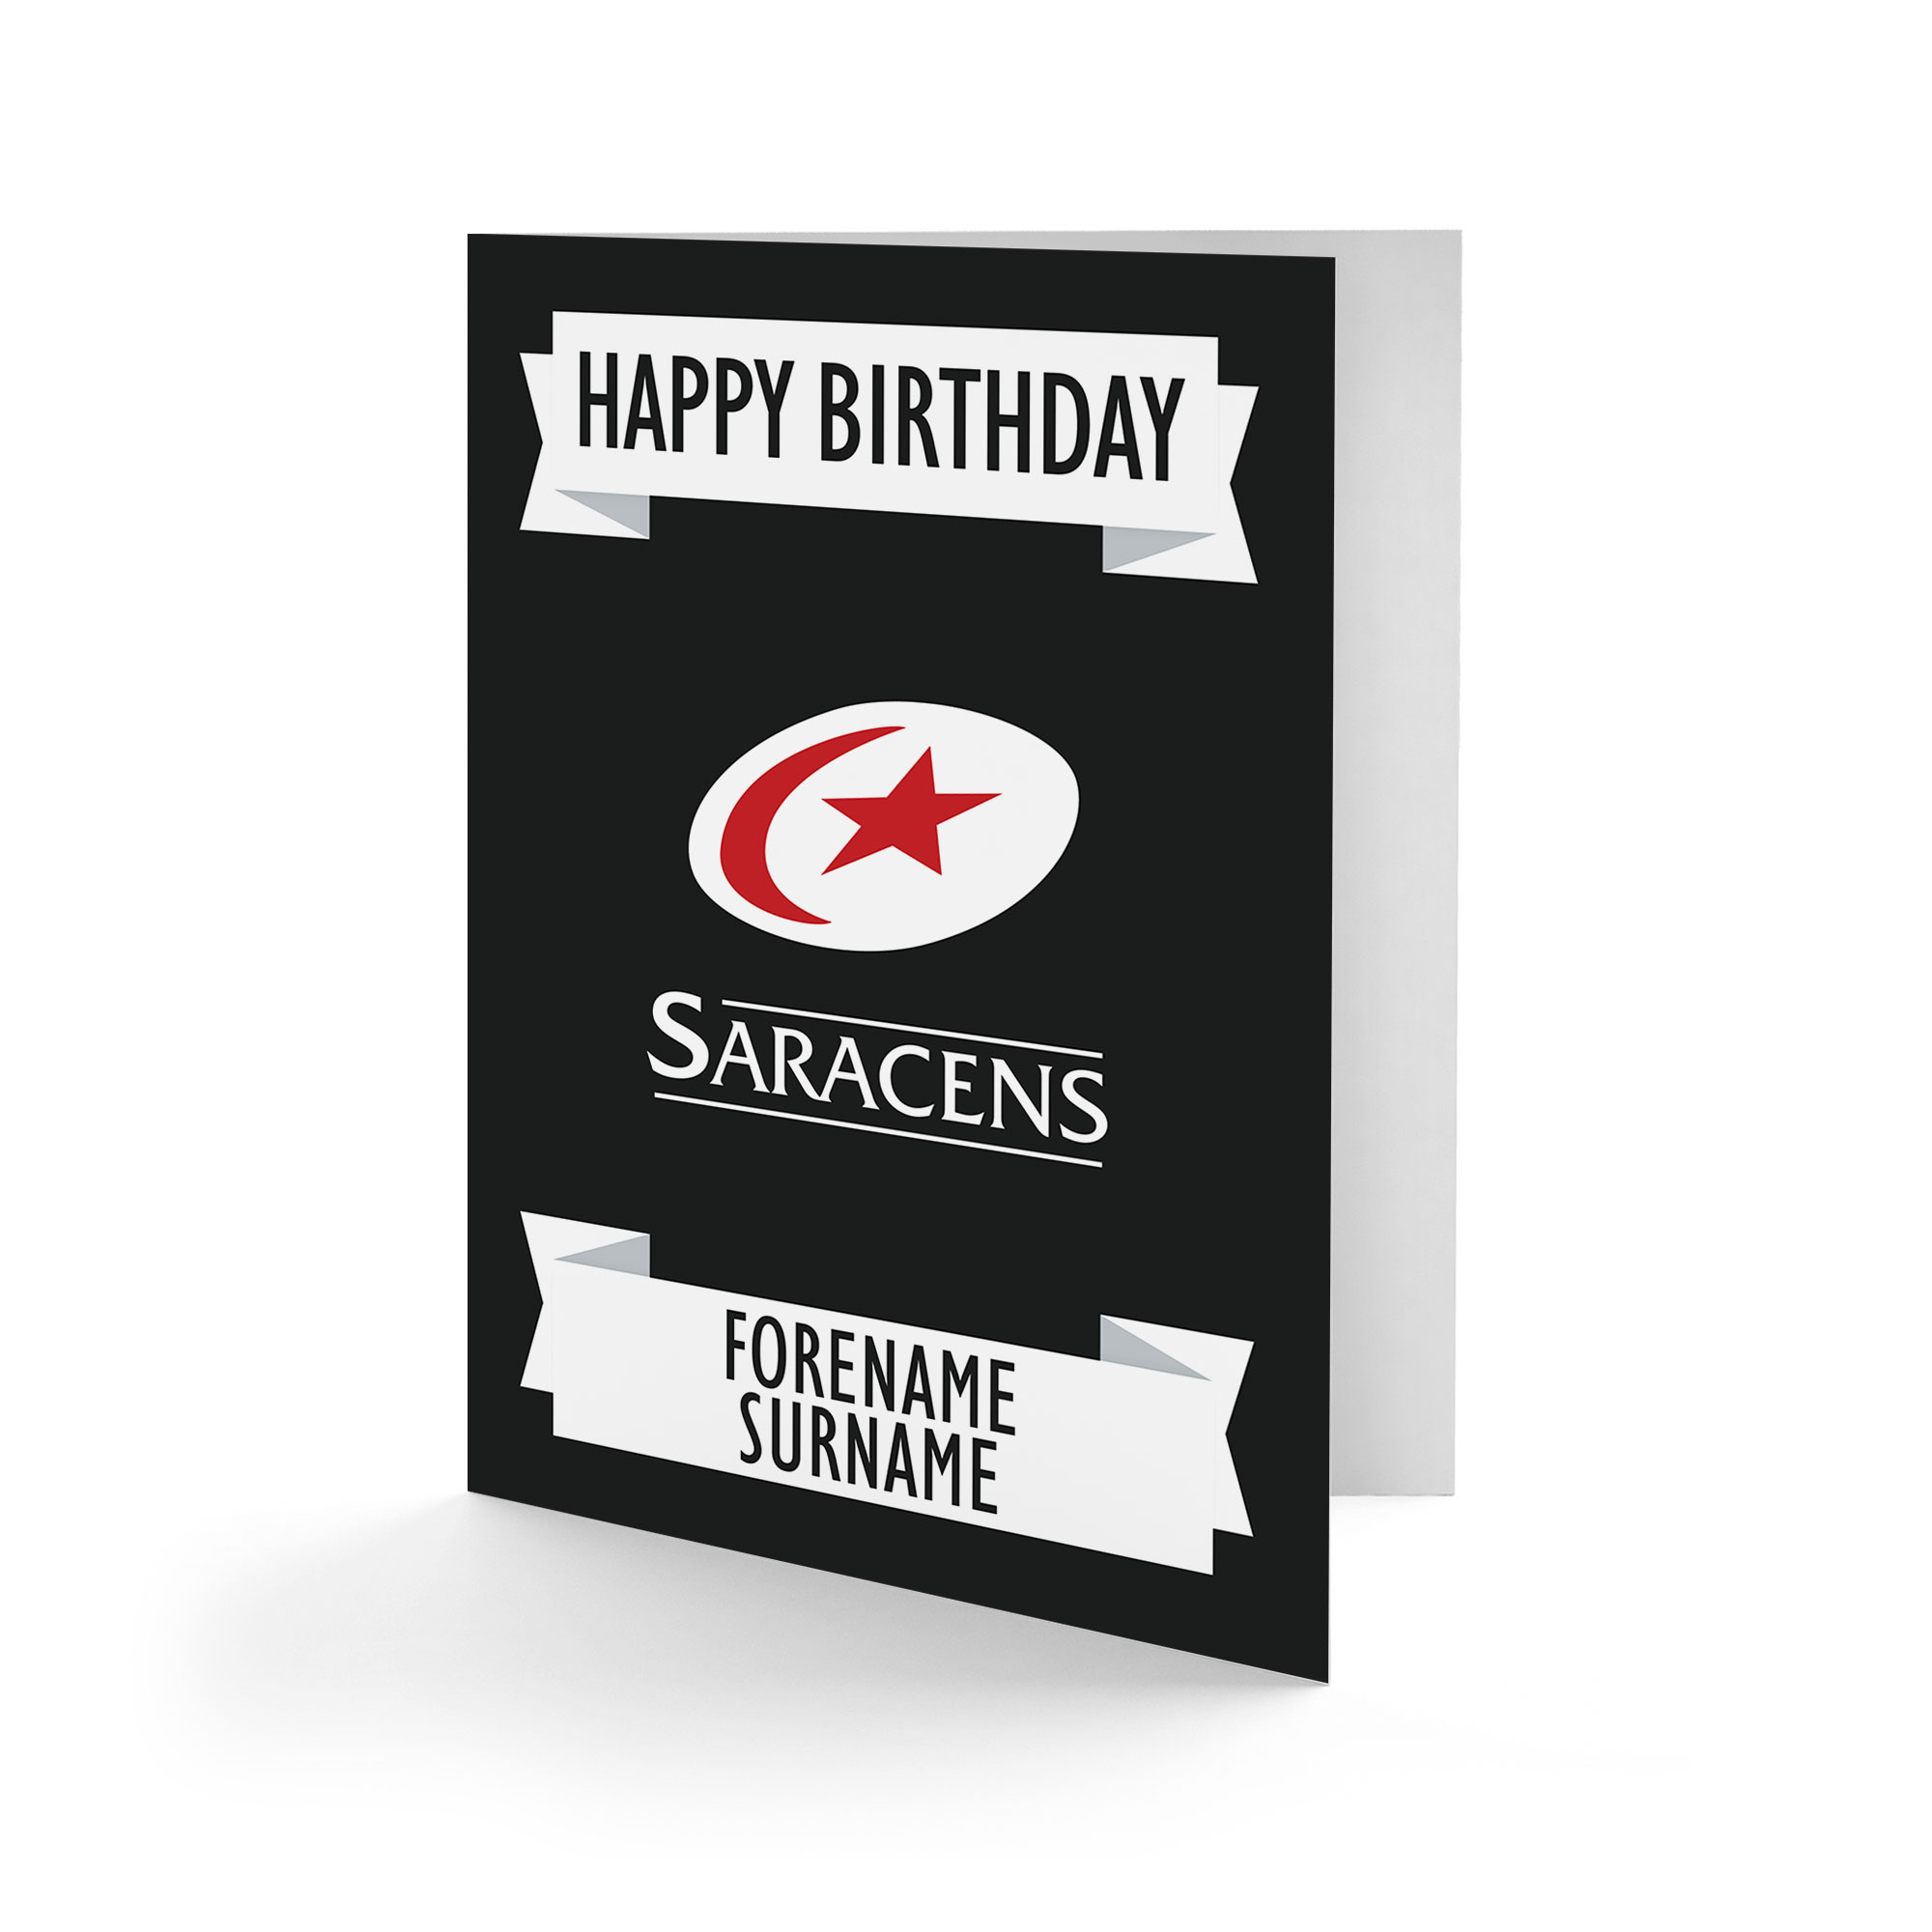 Saracens Crest Birthday Card